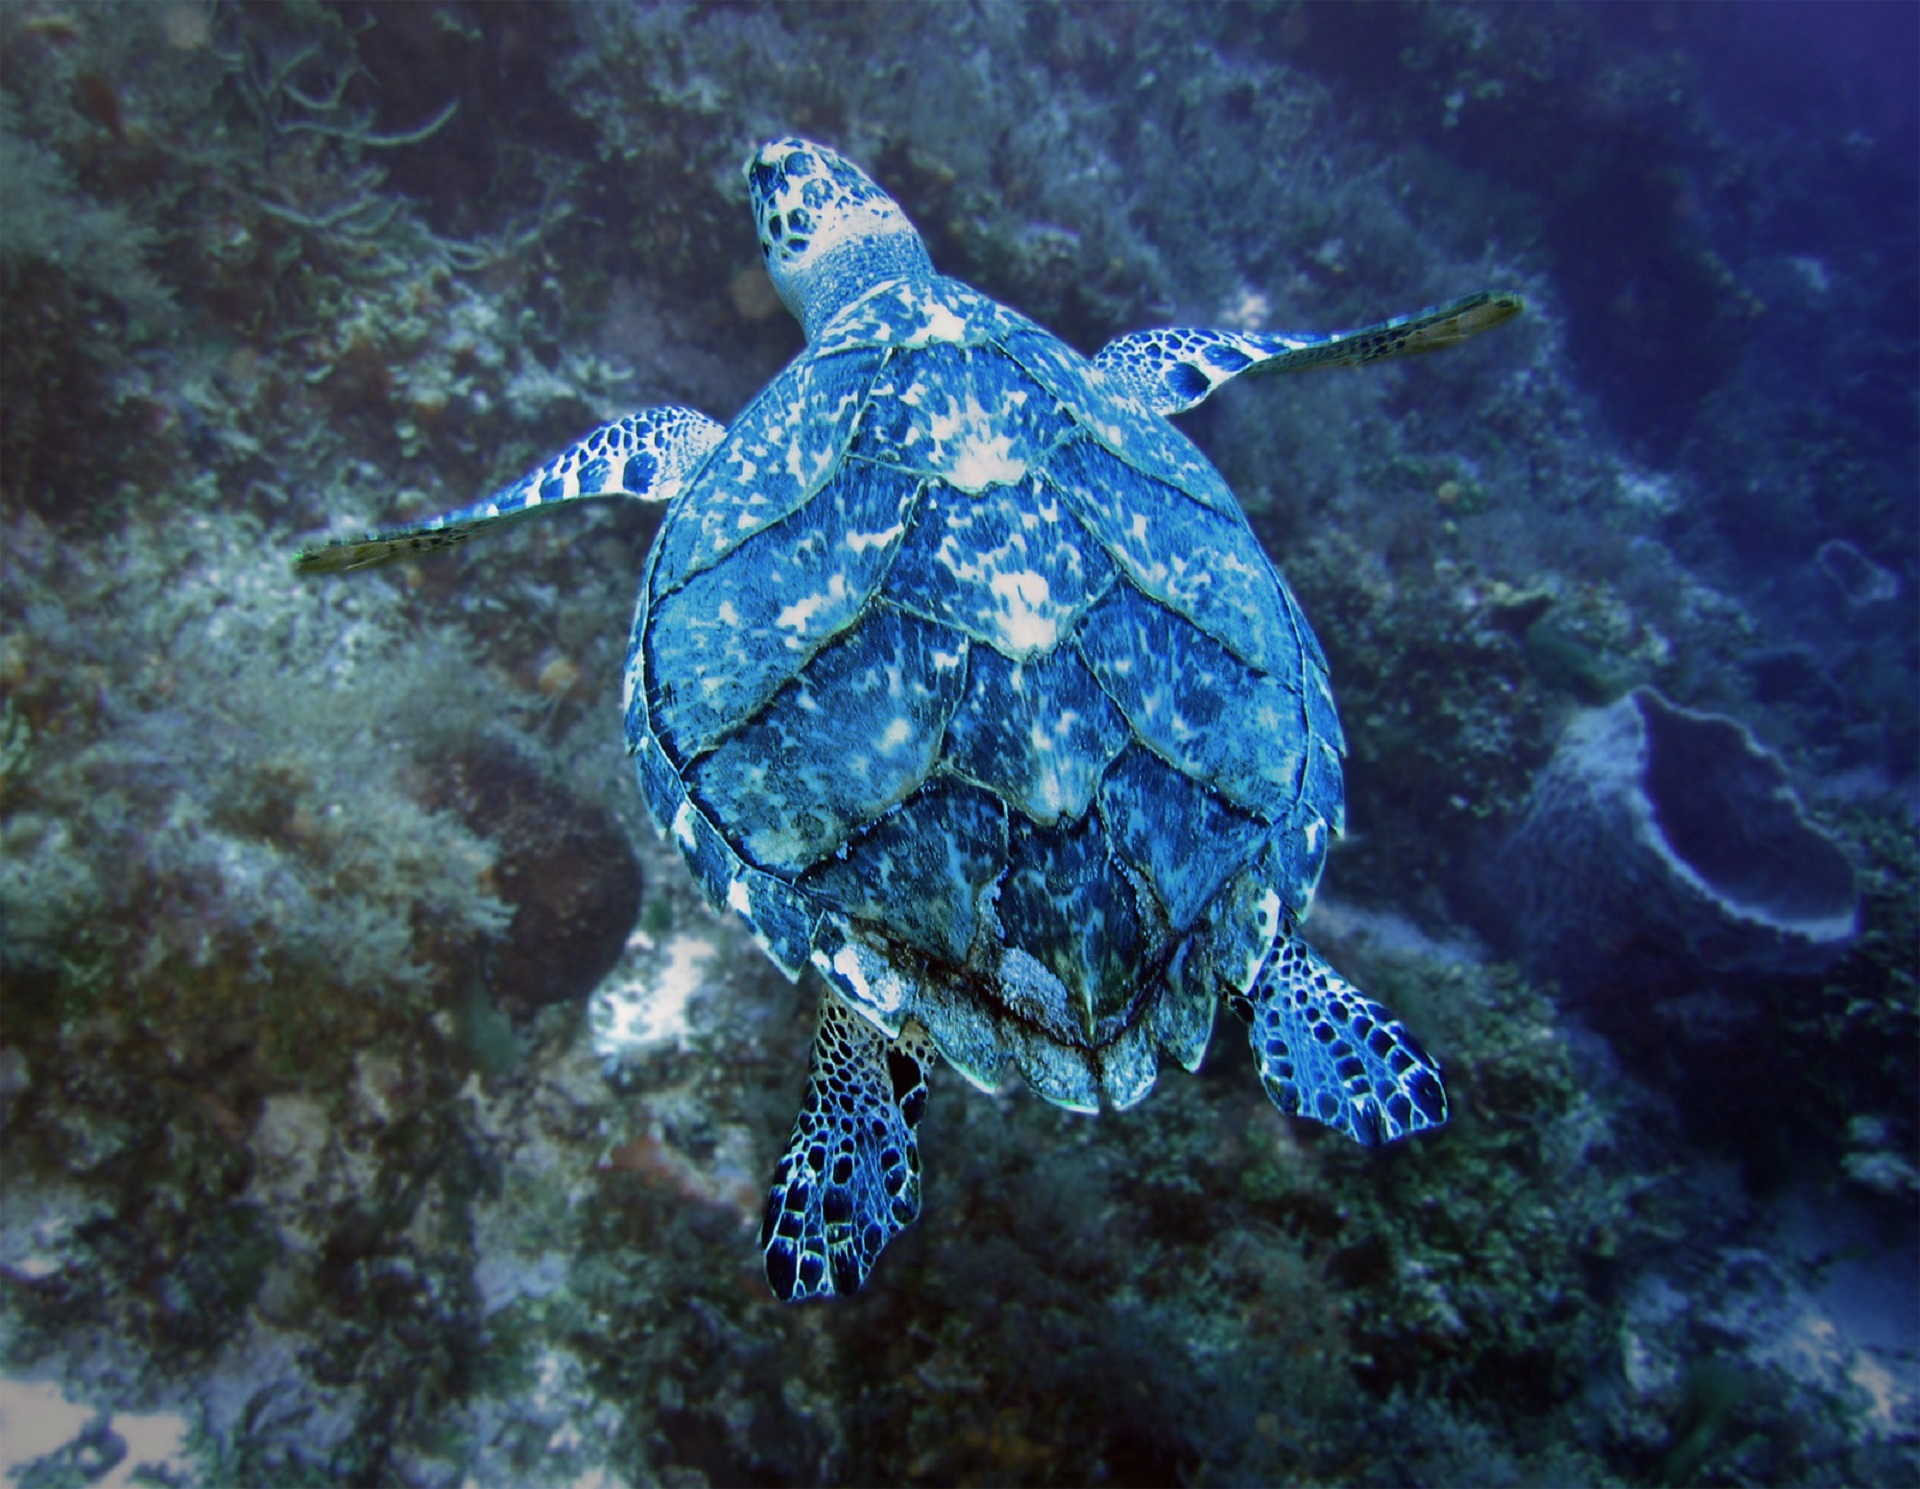 Turtle in the Ocean, Animal, Beach, Blue, Nature, HQ Photo